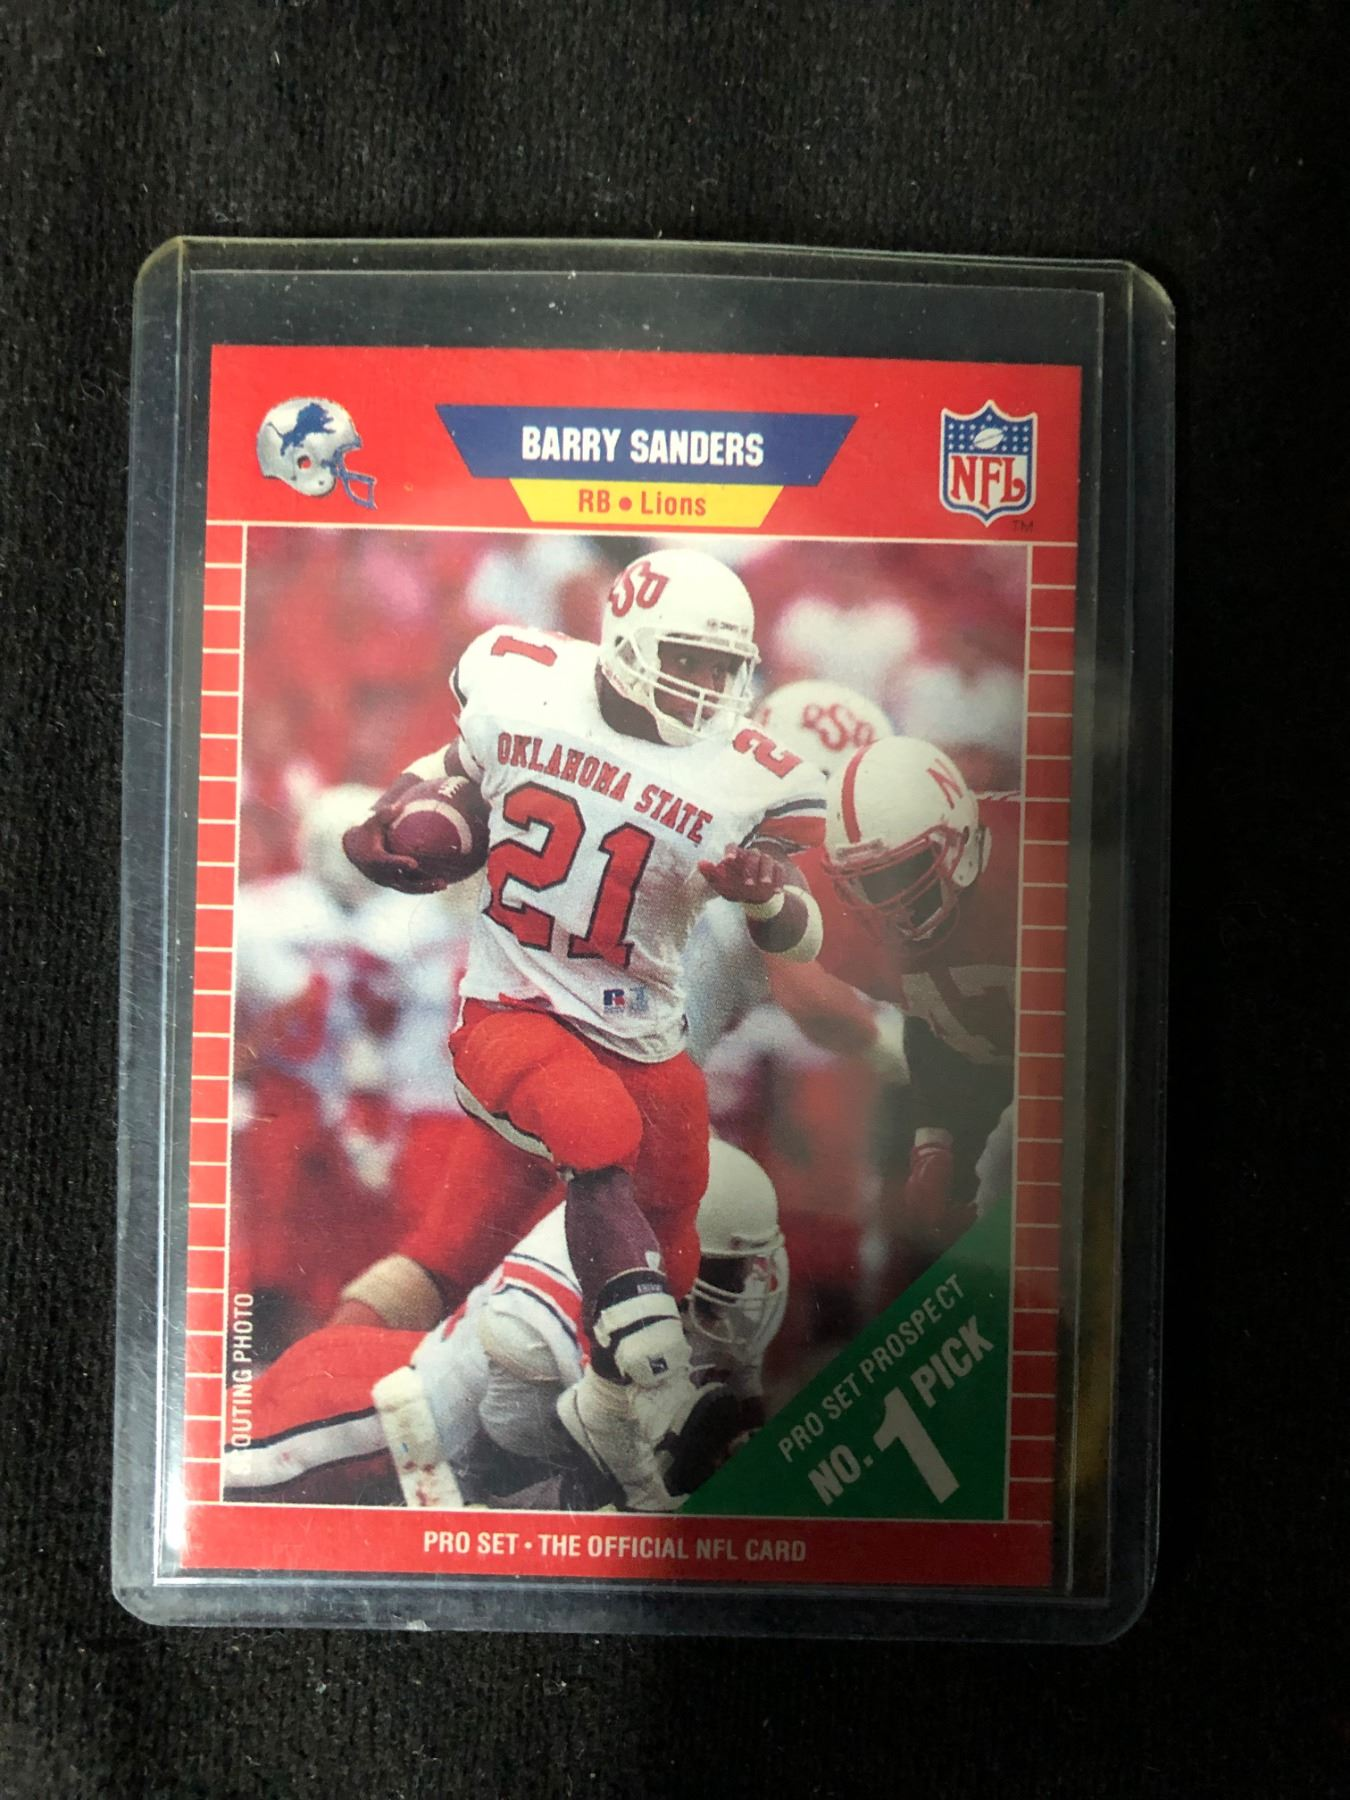 1989 Pro Set Barry Sanders Rookie Card Lot